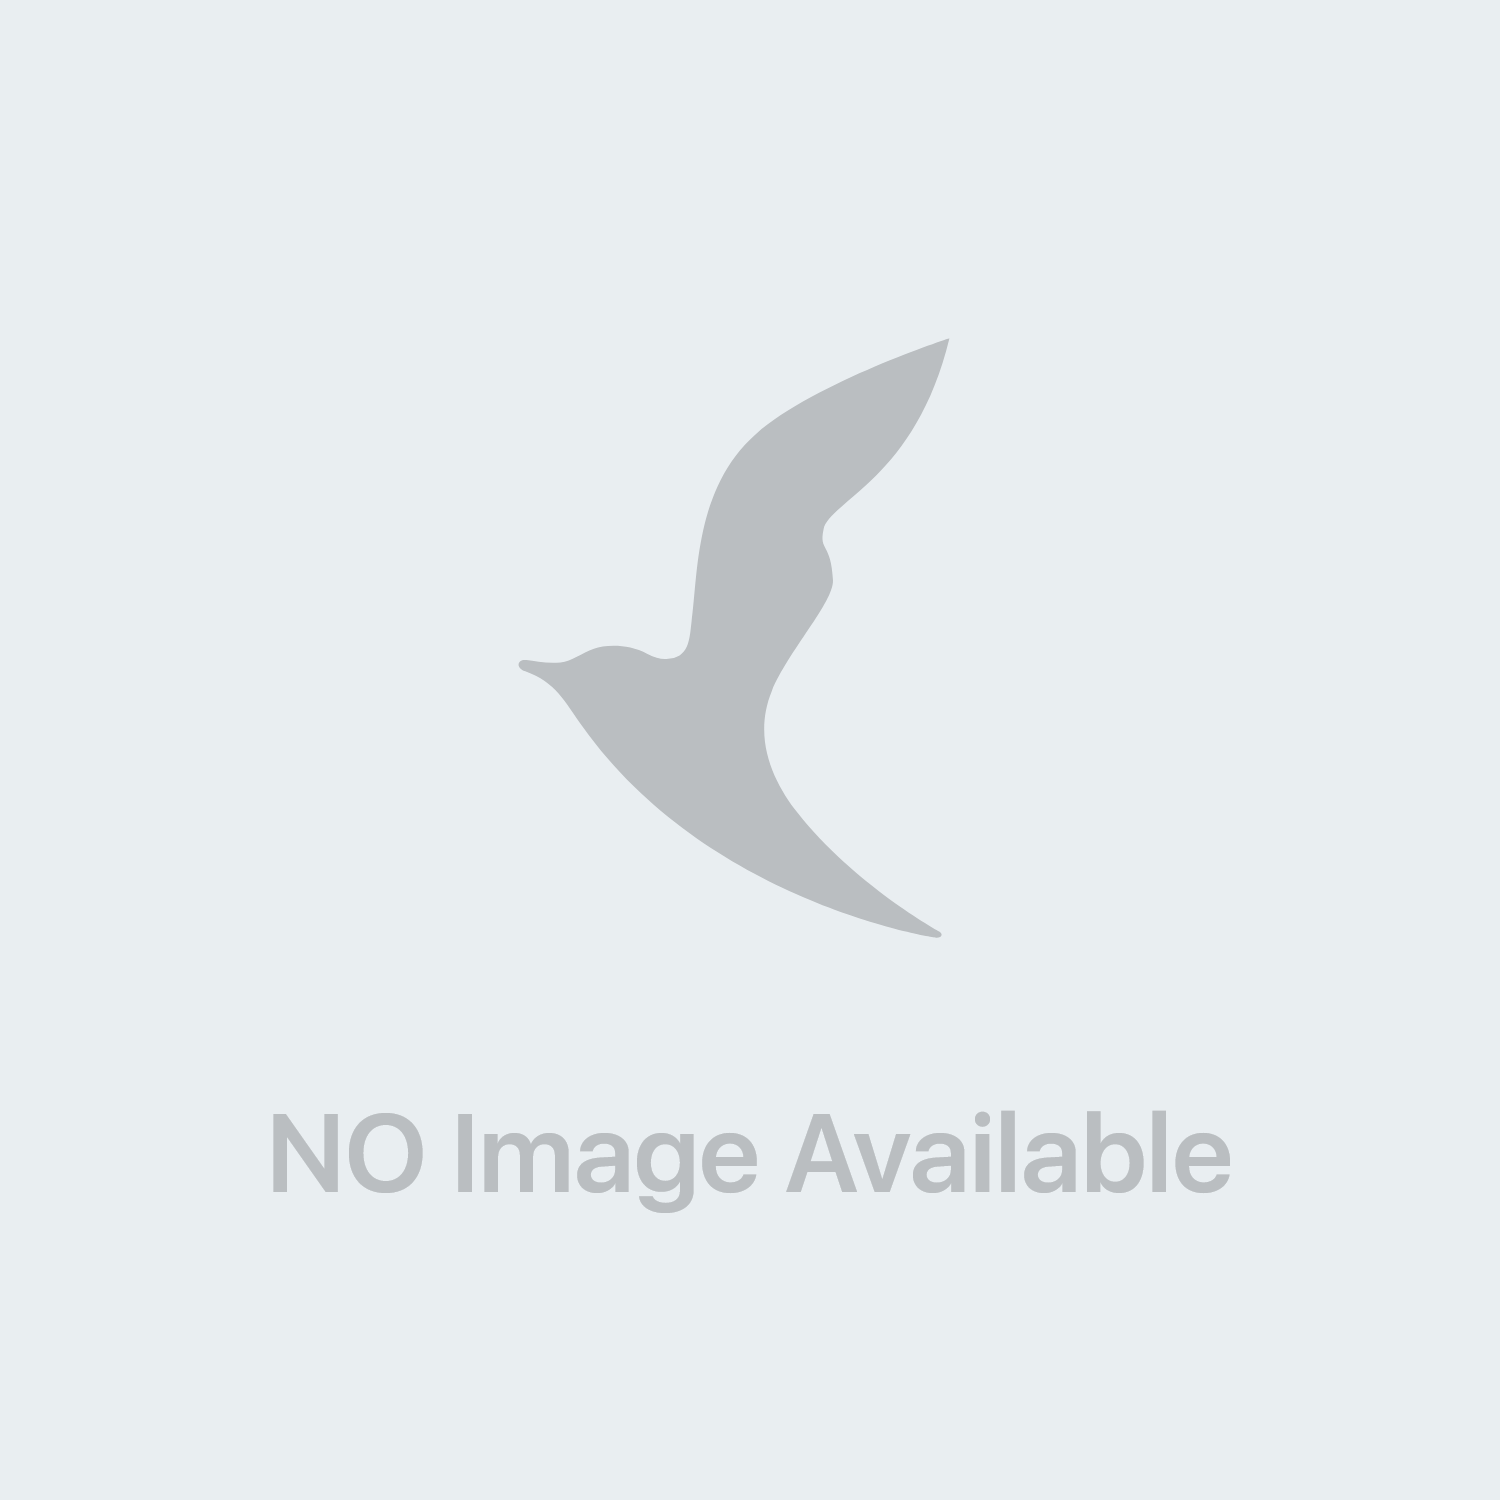 Jungle Formula Molto Forte Spray Antizanzara 75 ml